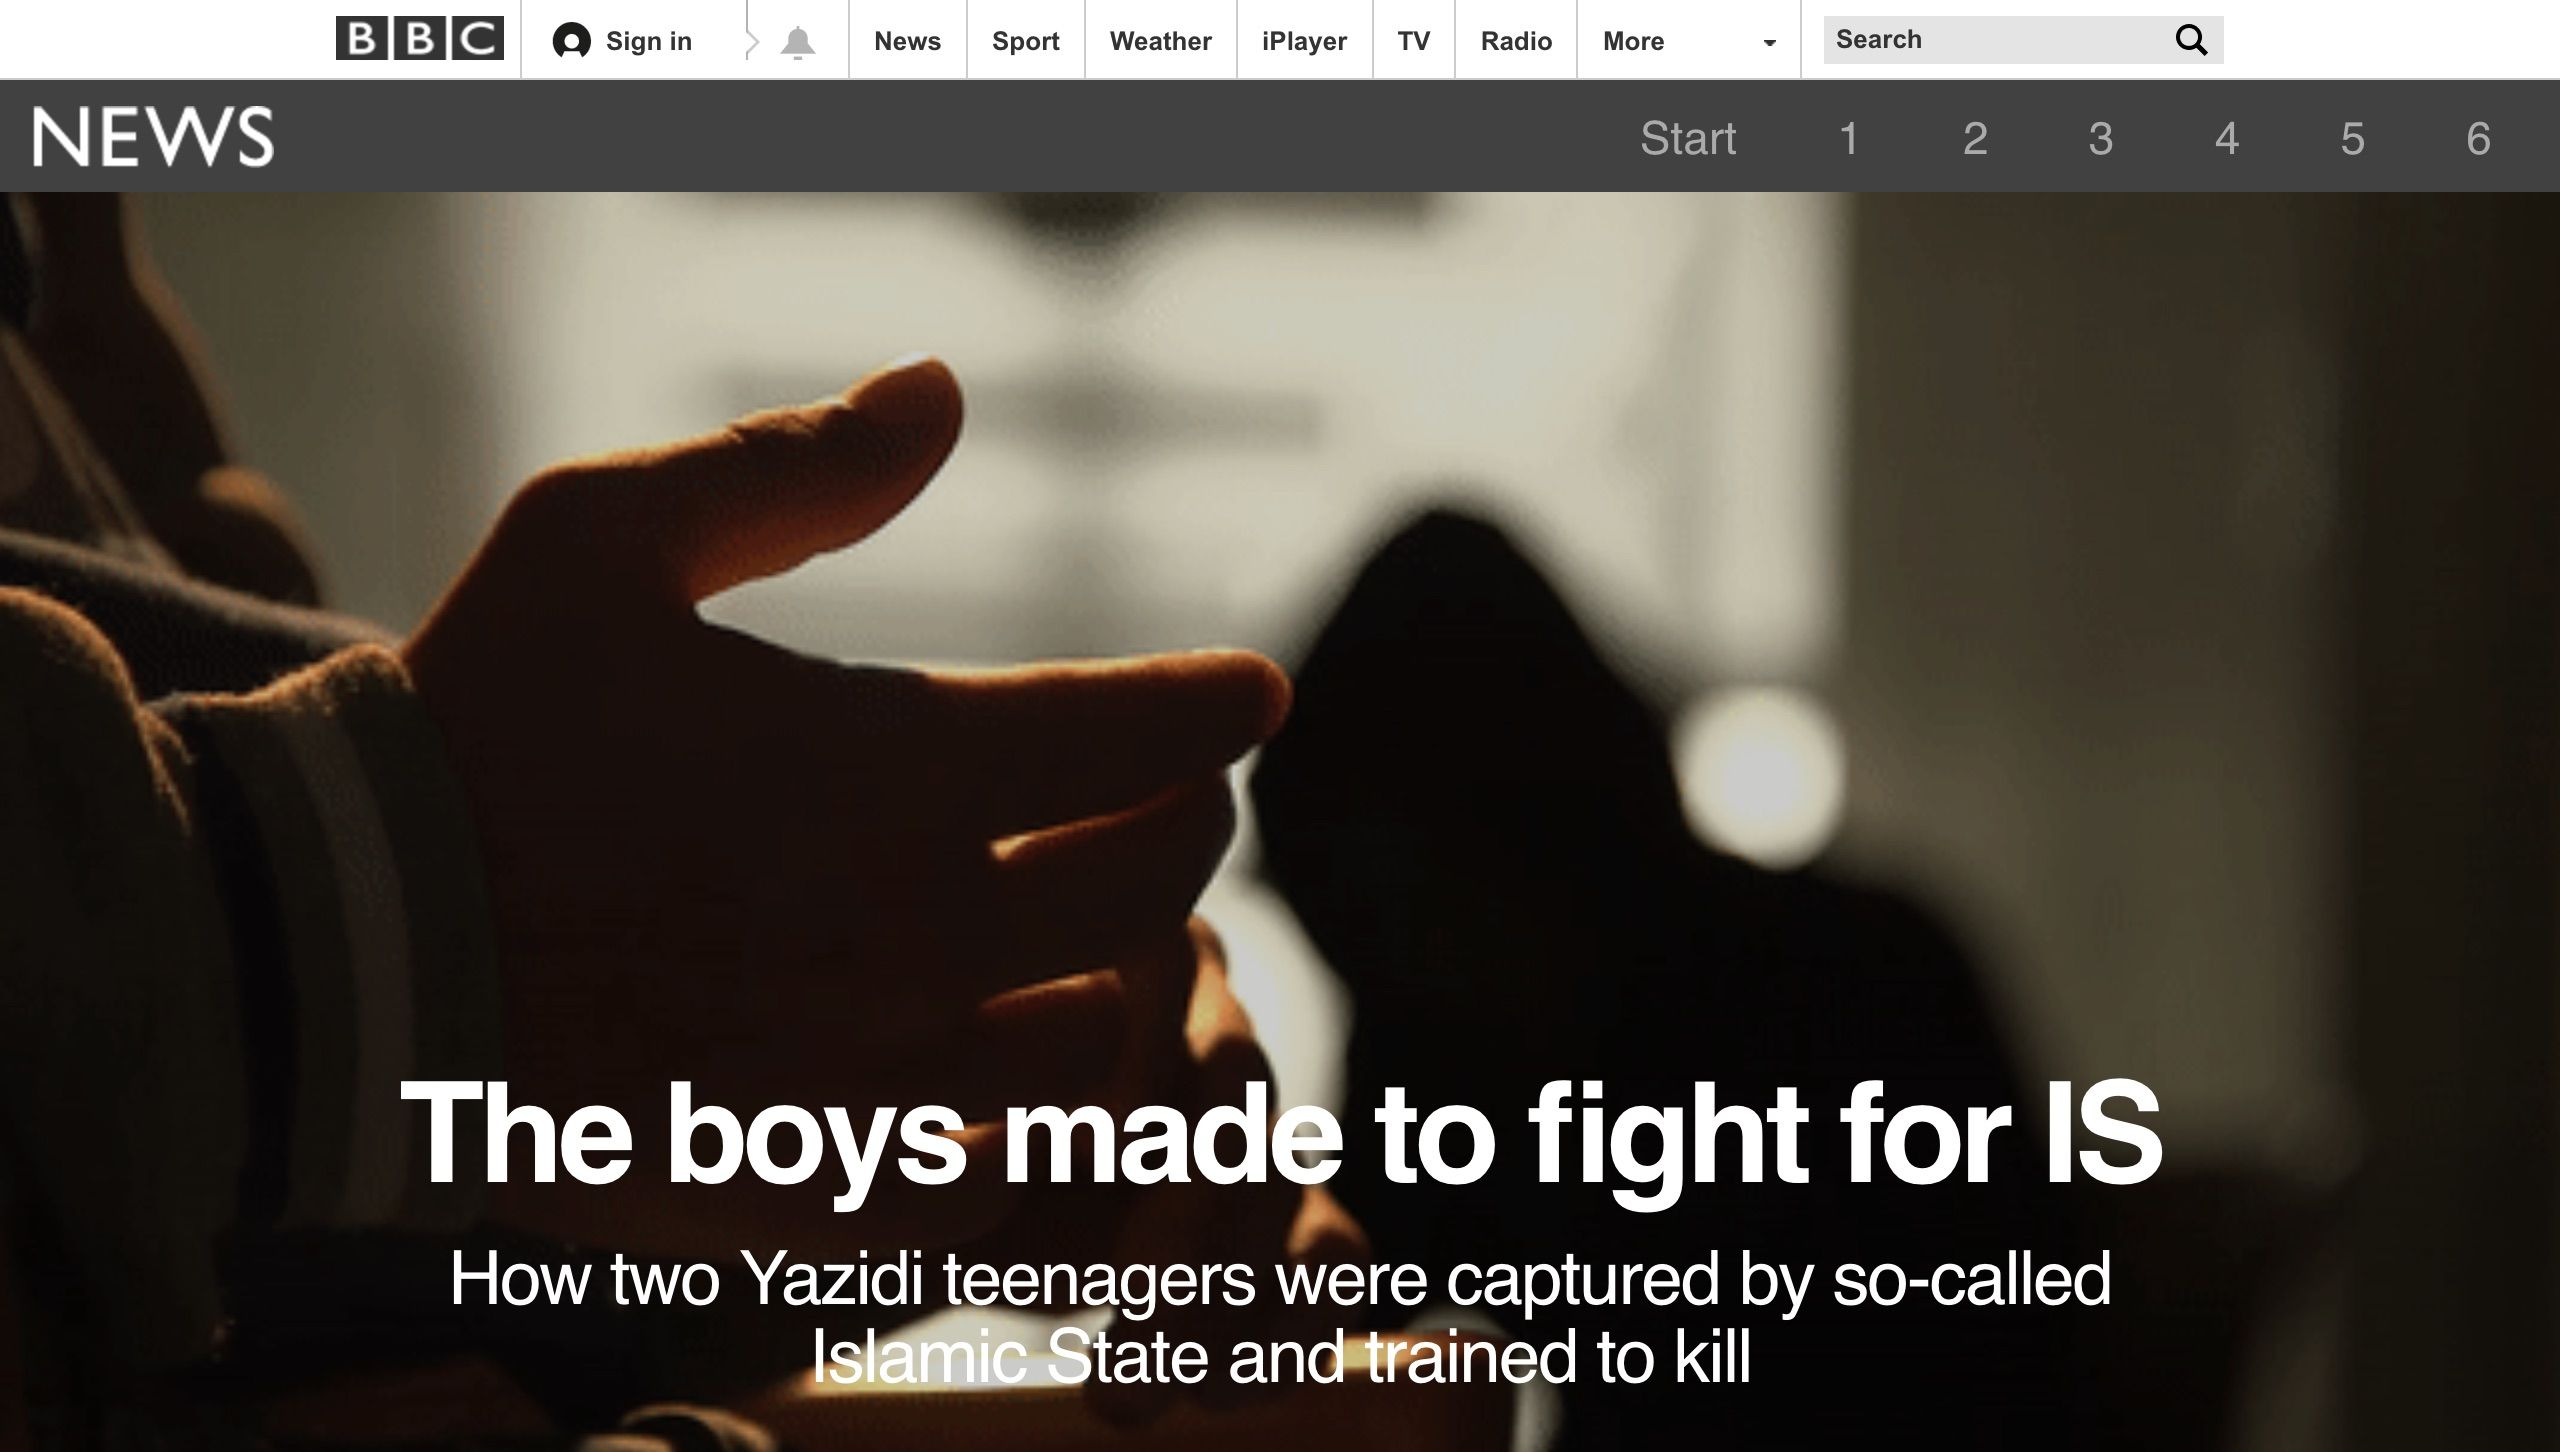 The boys made to fight for IS   Shorthand stories   Bbc news ...